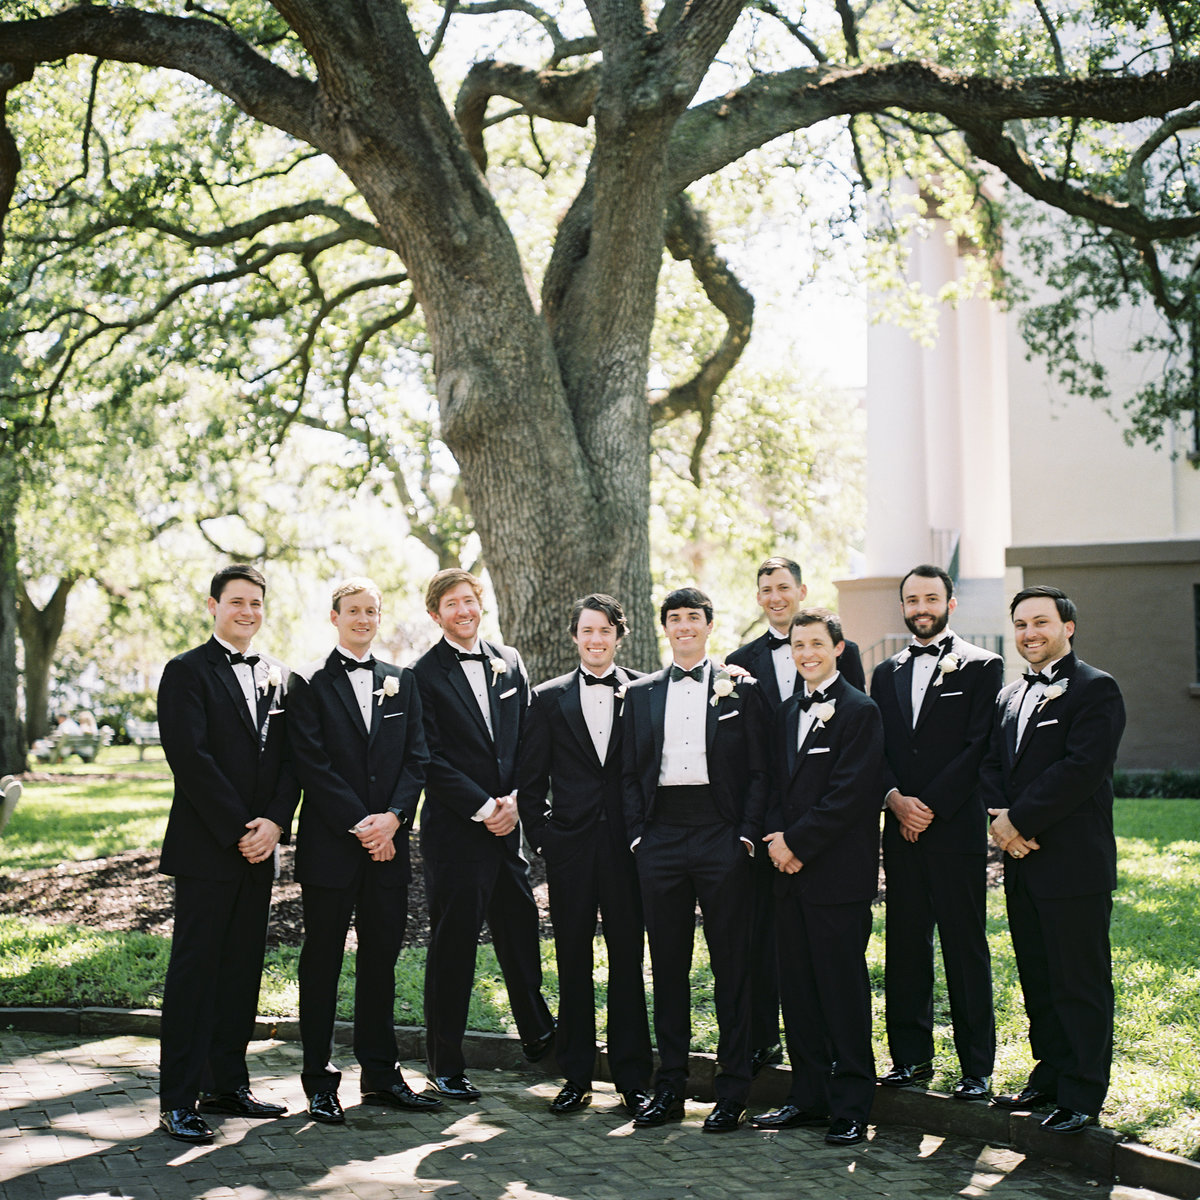 french-huguenot-church-charleston-wedding-photographers-philip-casey-photo-620